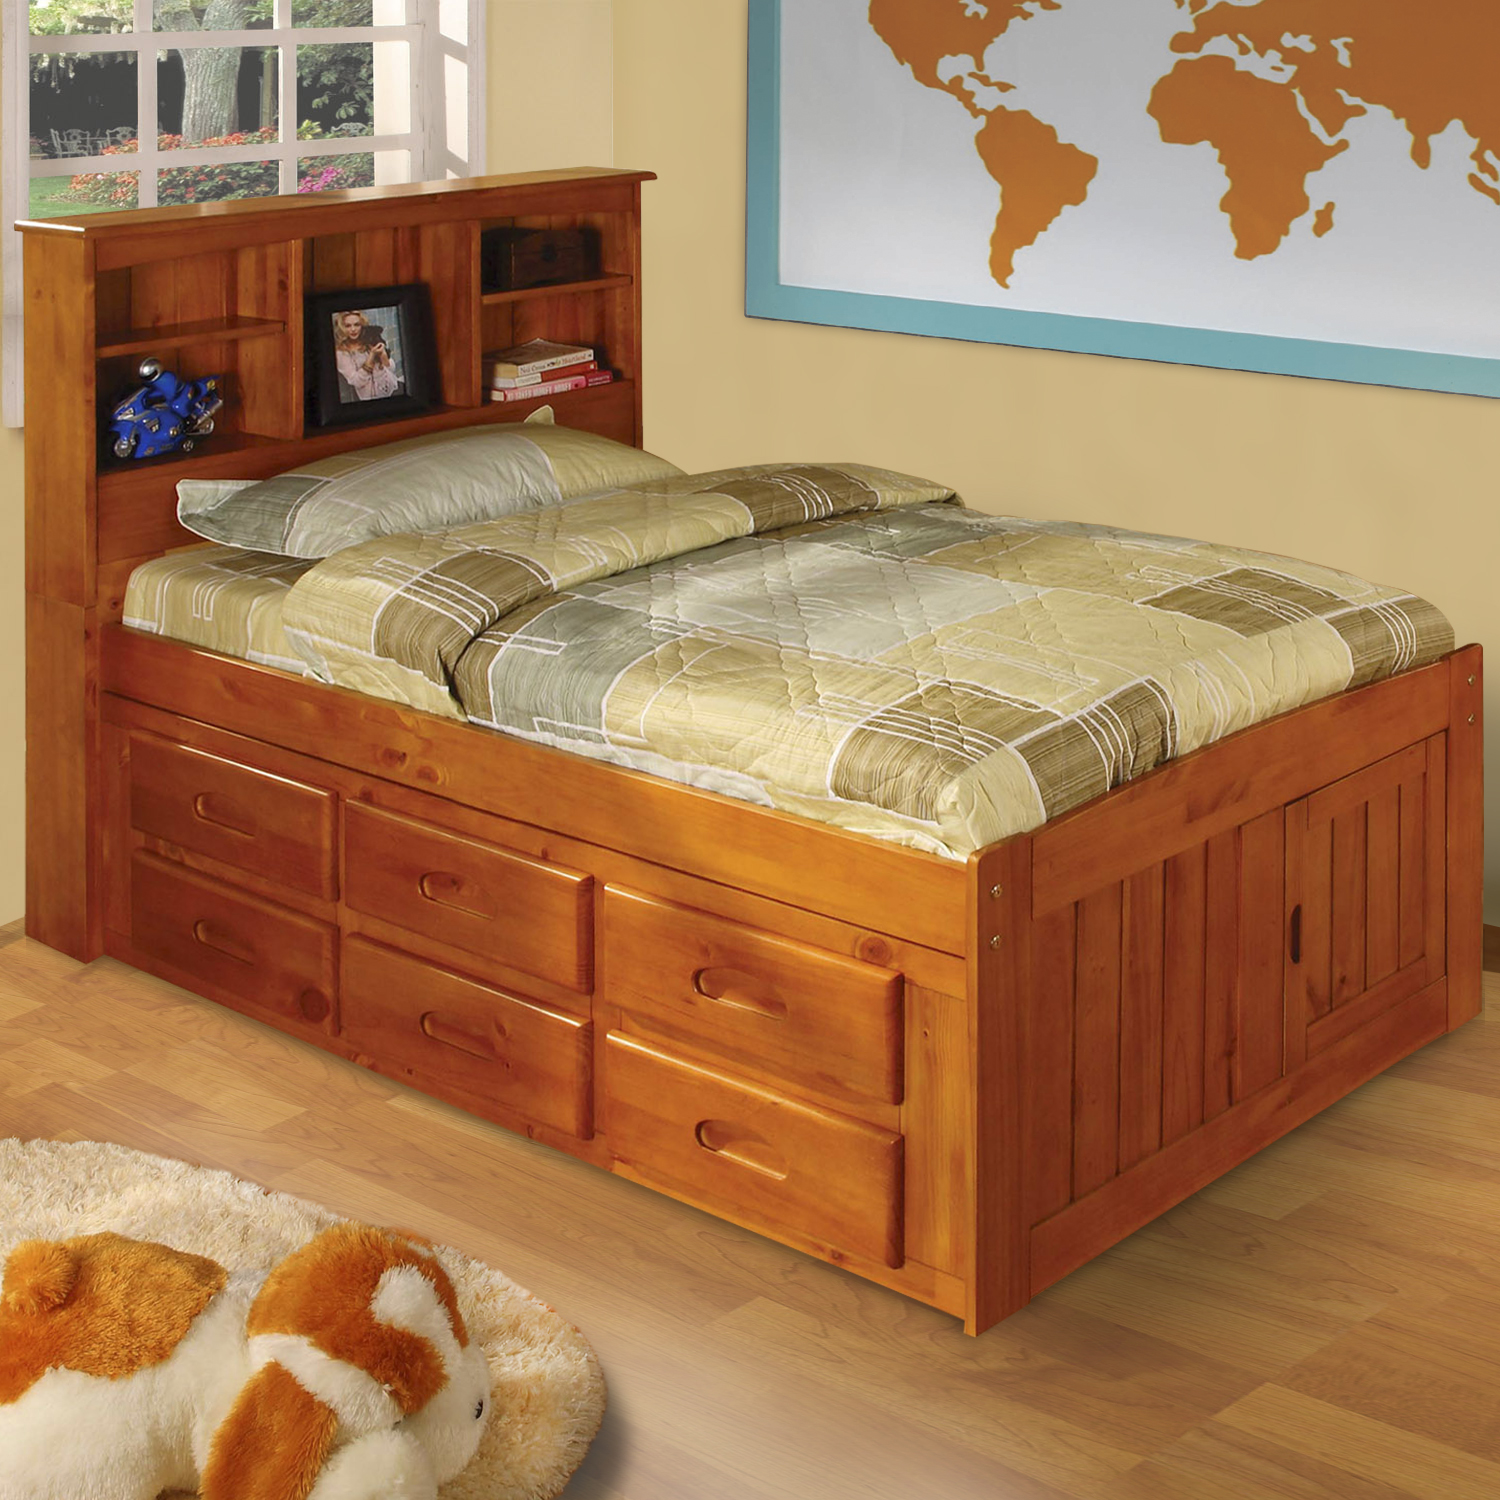 American Furniture Classics Model 2120-BCH, Solid Pine Bookcase Headboard Twin Bed with Six Drawers in Honey